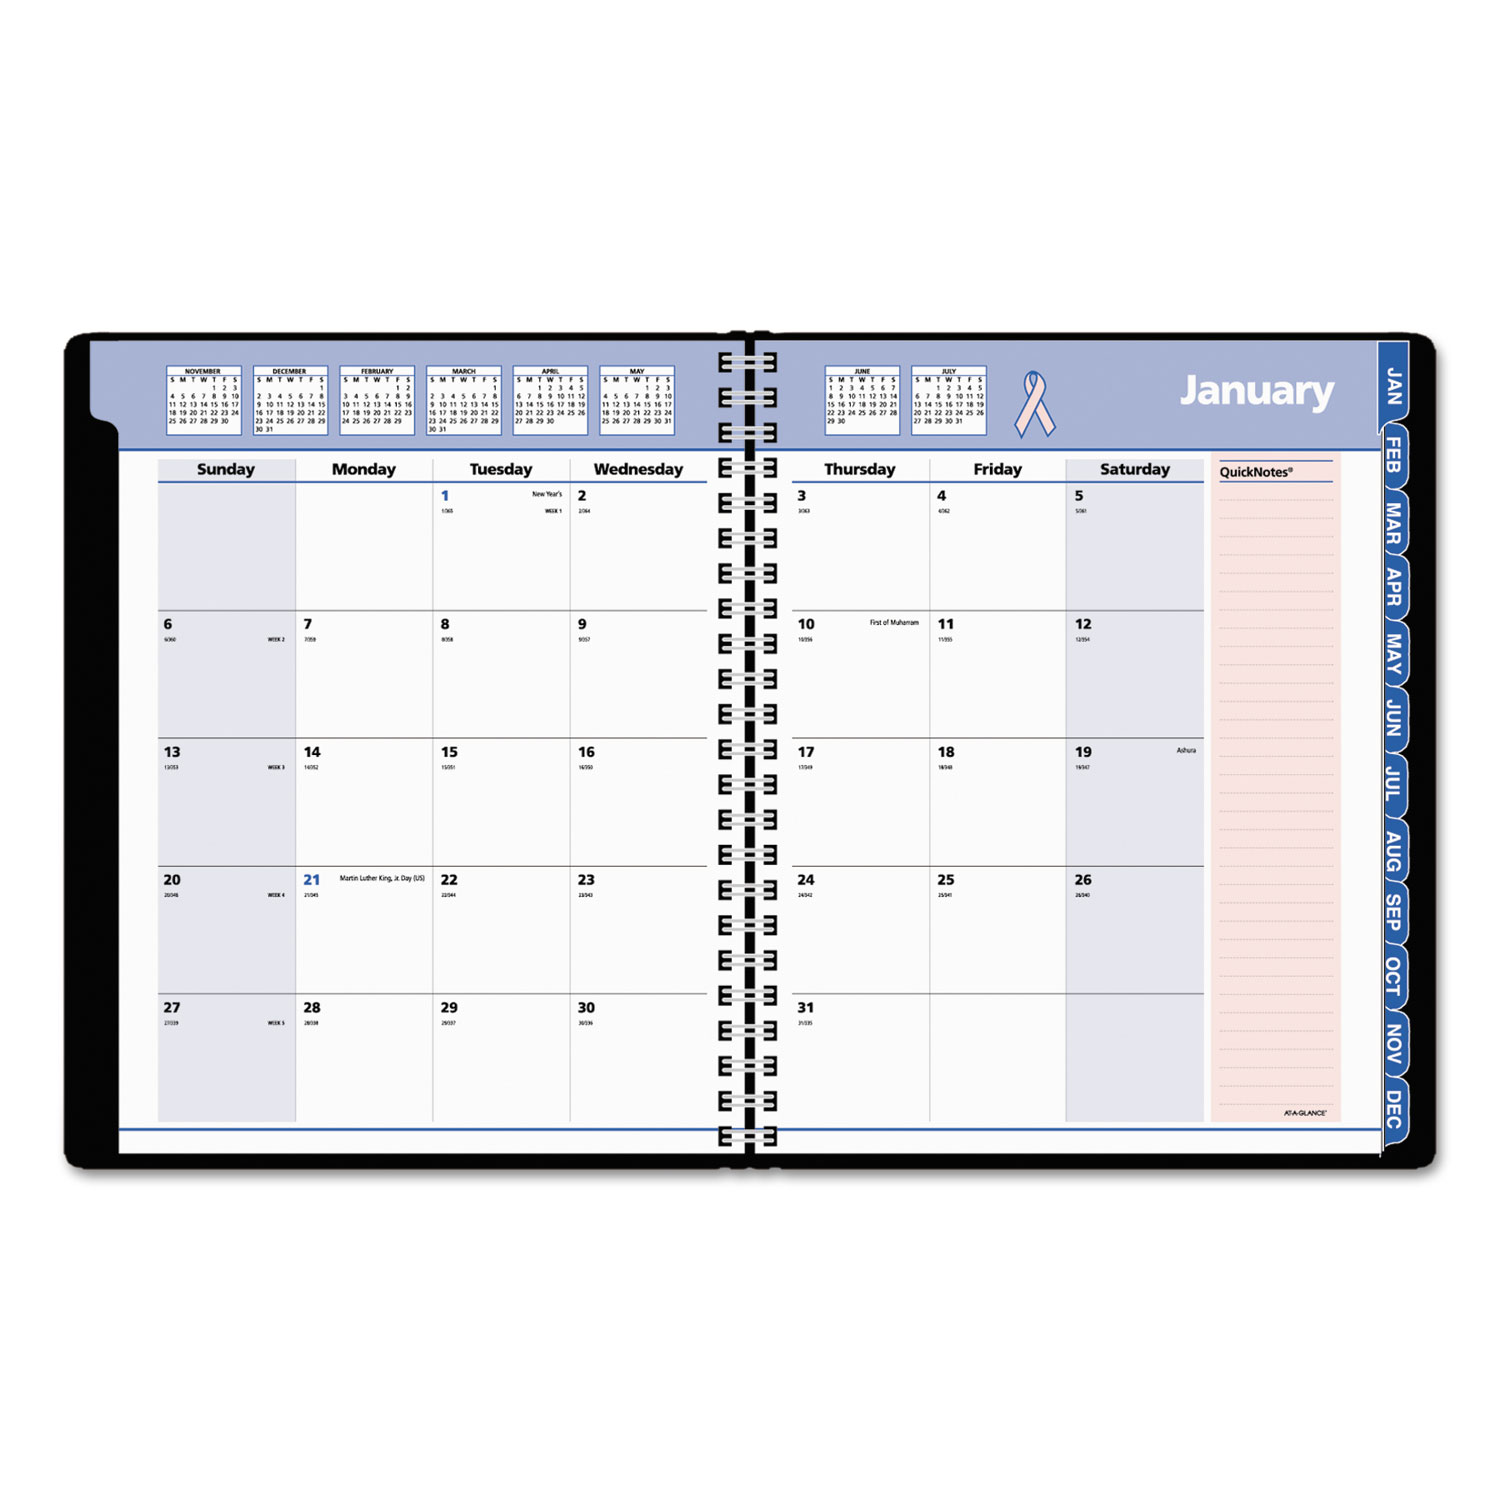 quicknotes special edition monthly planner by at a glance